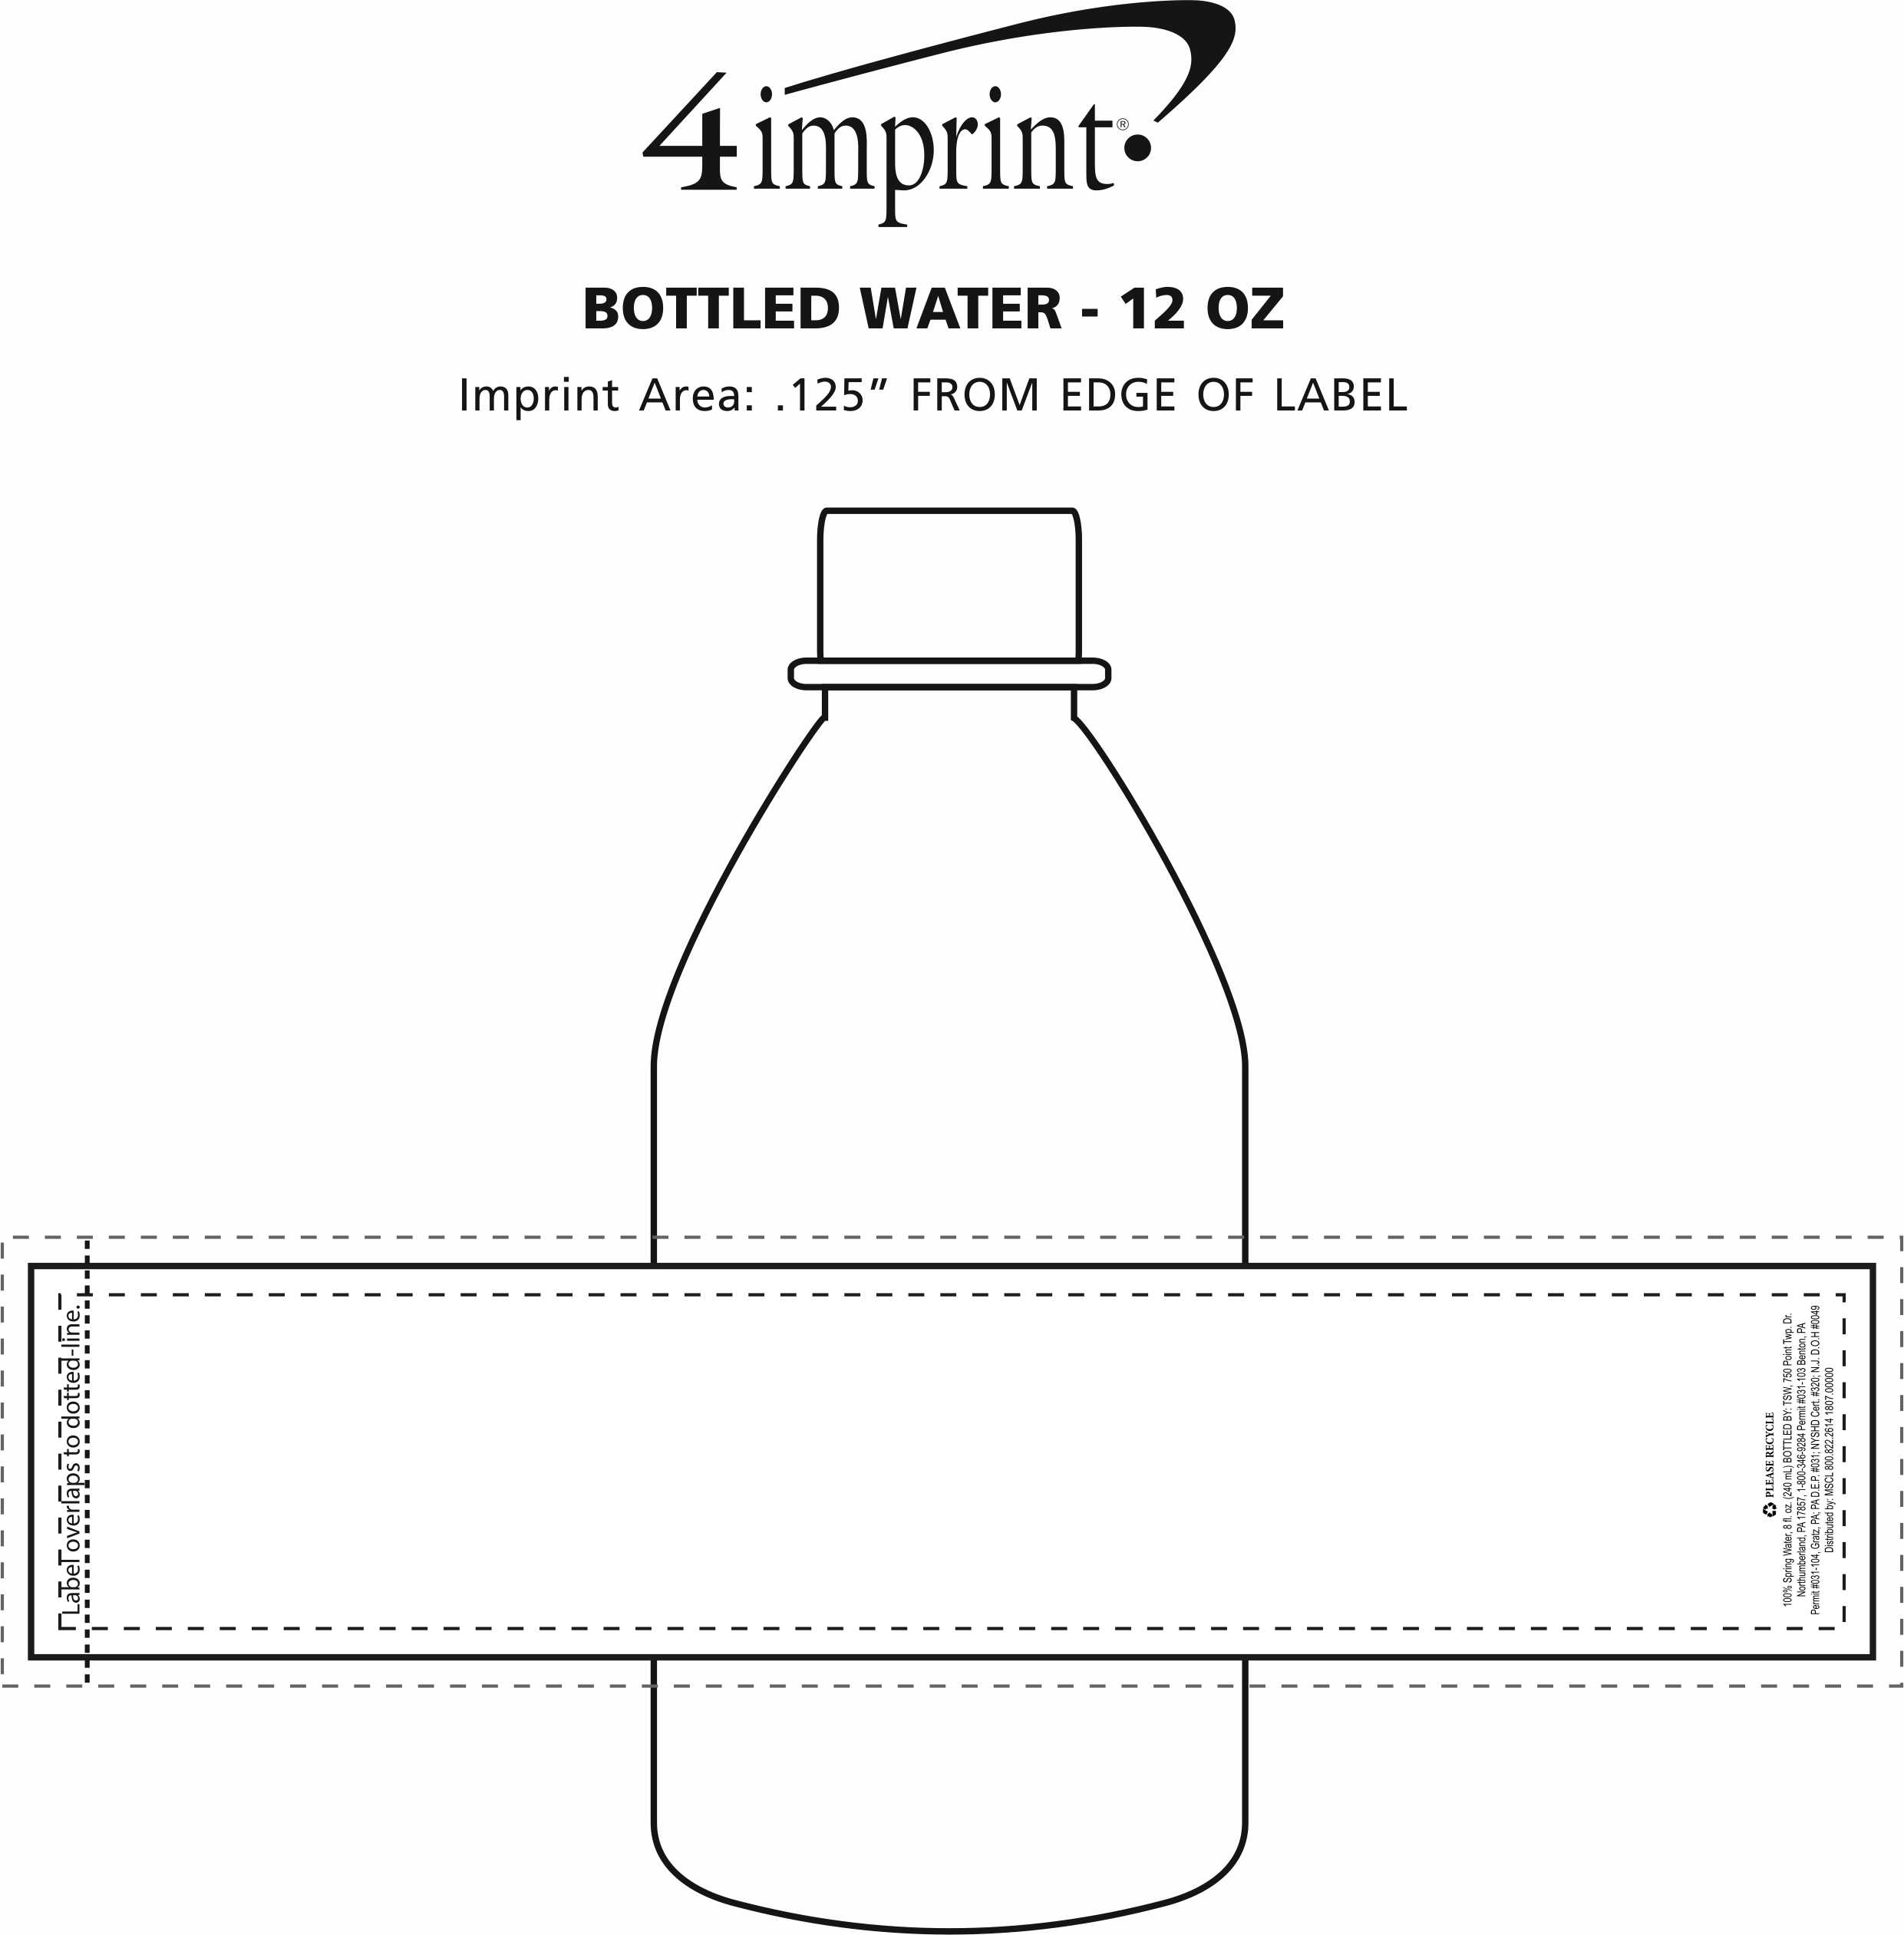 Imprint Area of Bottled Water - 12 oz.